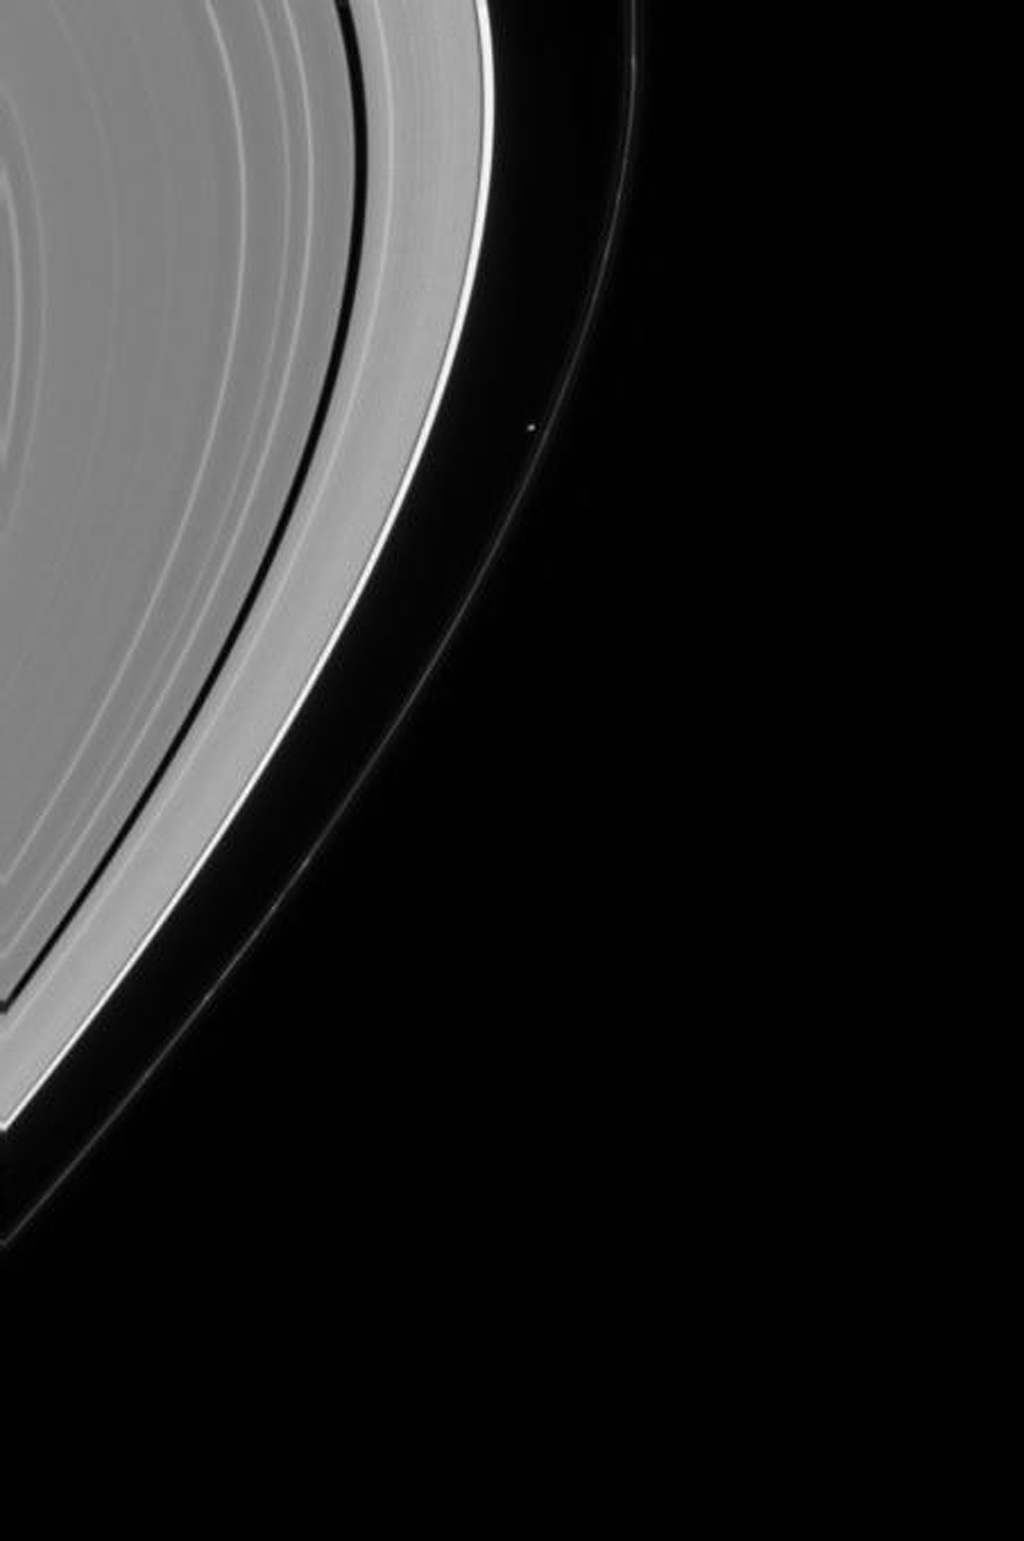 This image captured by NASA's Cassini spacecraft shows Saturn's moon Prometheus shepherding the inner edge of Saturn's F ring.